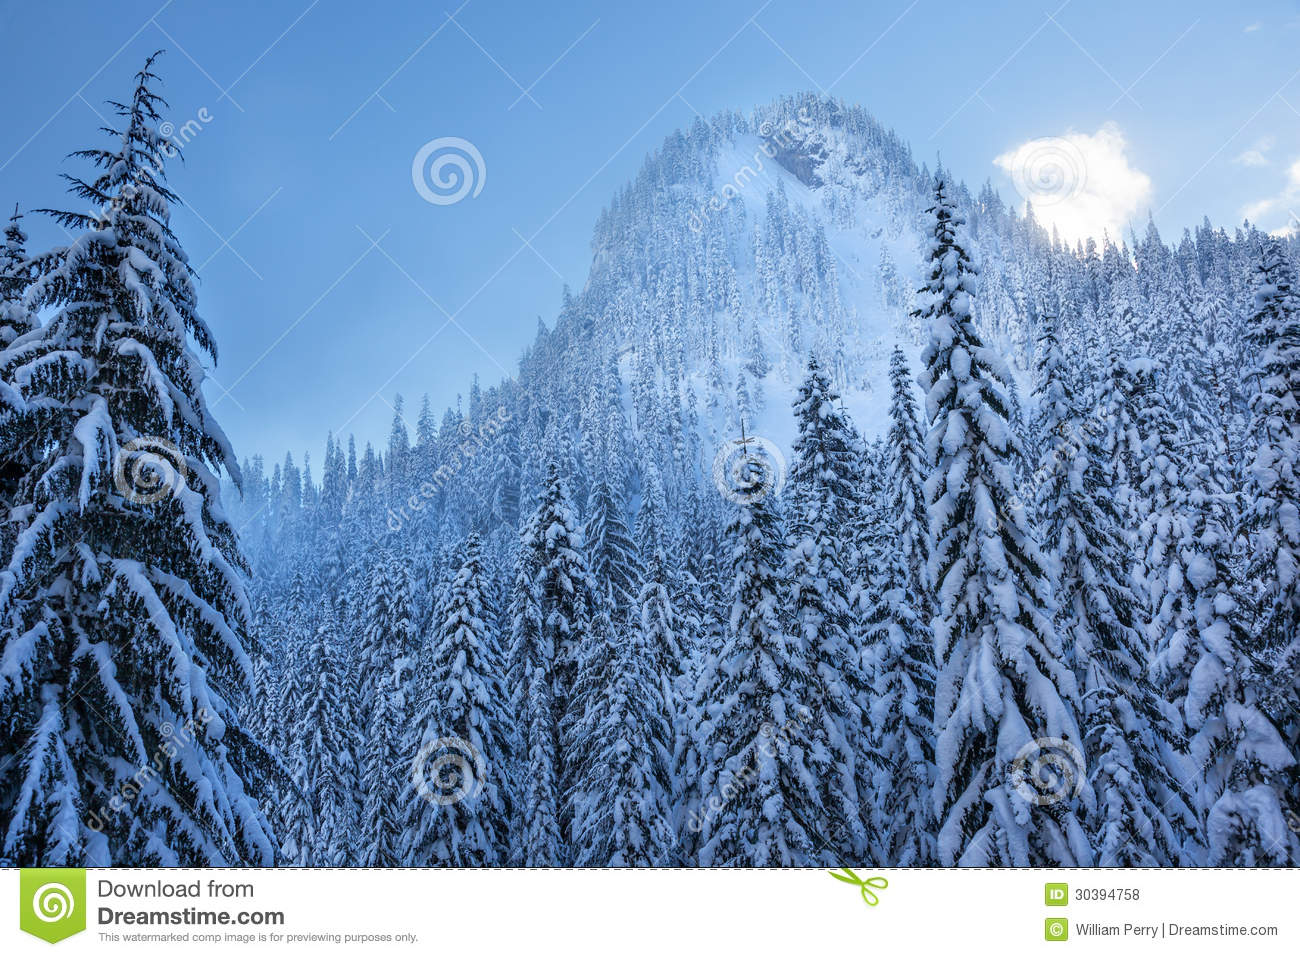 Snowy evergreen Images and Stock Photos. 4,938 Snowy evergreen ...